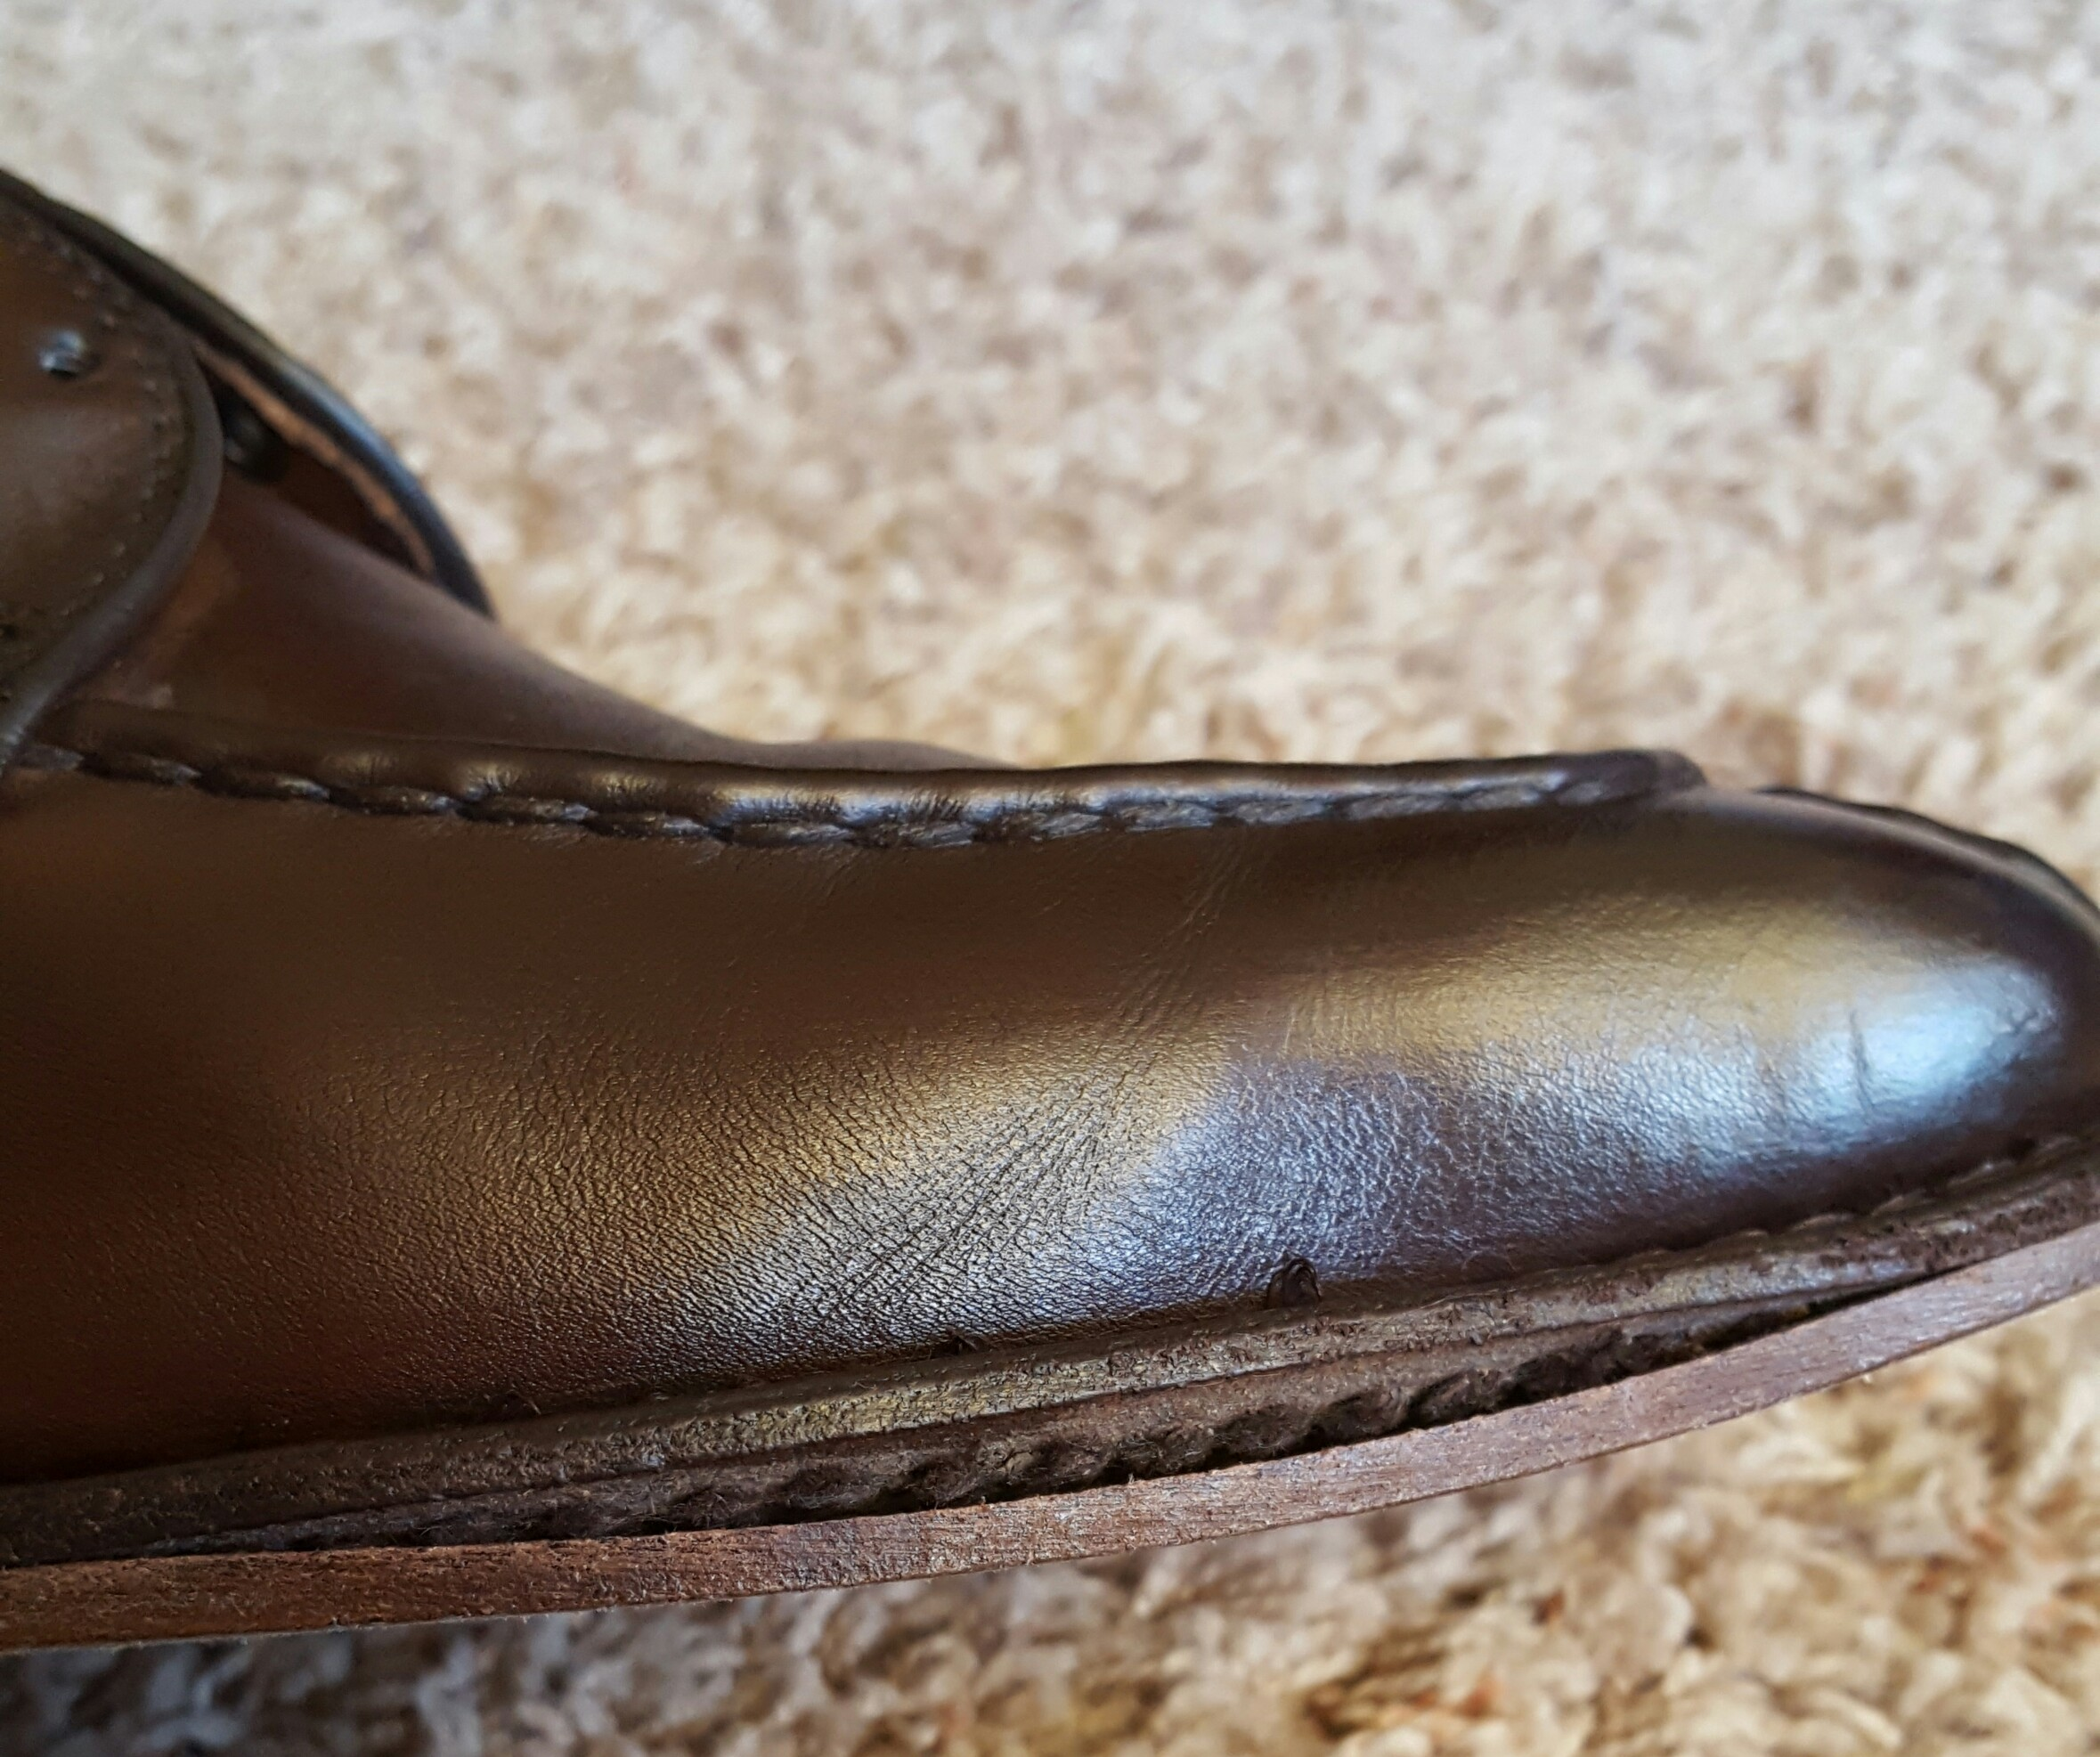 rc121's photos in Allen Edmonds Appreciation Thread 2016 - News, Pictures, Sizing, Accessories, Clothing, etc